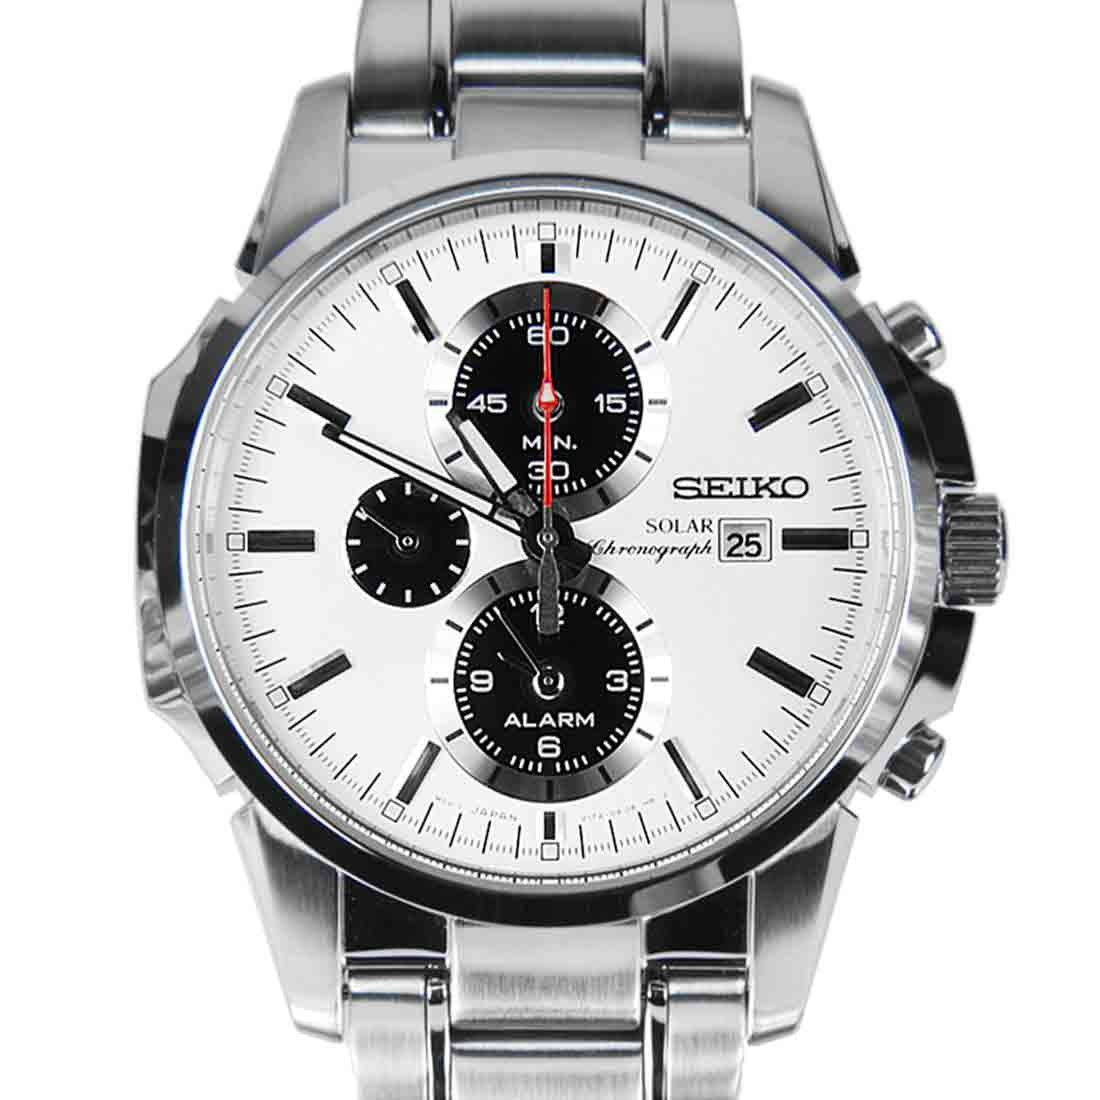 Ssc081p1 ssc083p1 ssc085p1 ssc087p1 seiko gents solar casual watch ebay for Solar watches